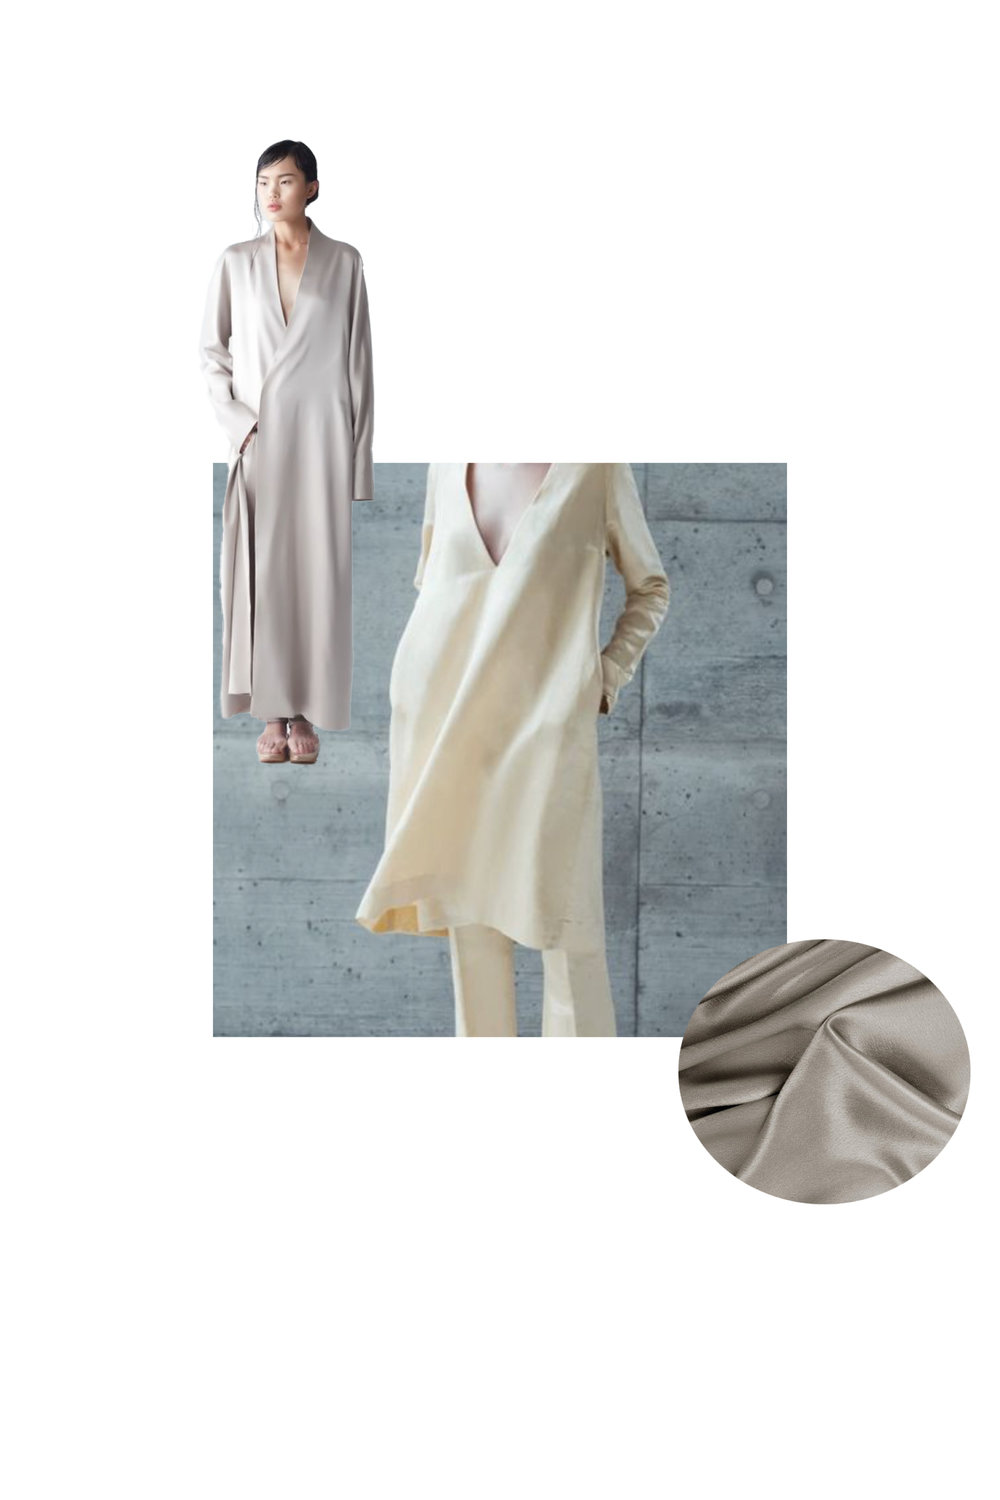 Centre Image:   Coltrane   Cut Out Image:  Yael Dress Coat | NEEMIC  | NOT JUST A LABEL